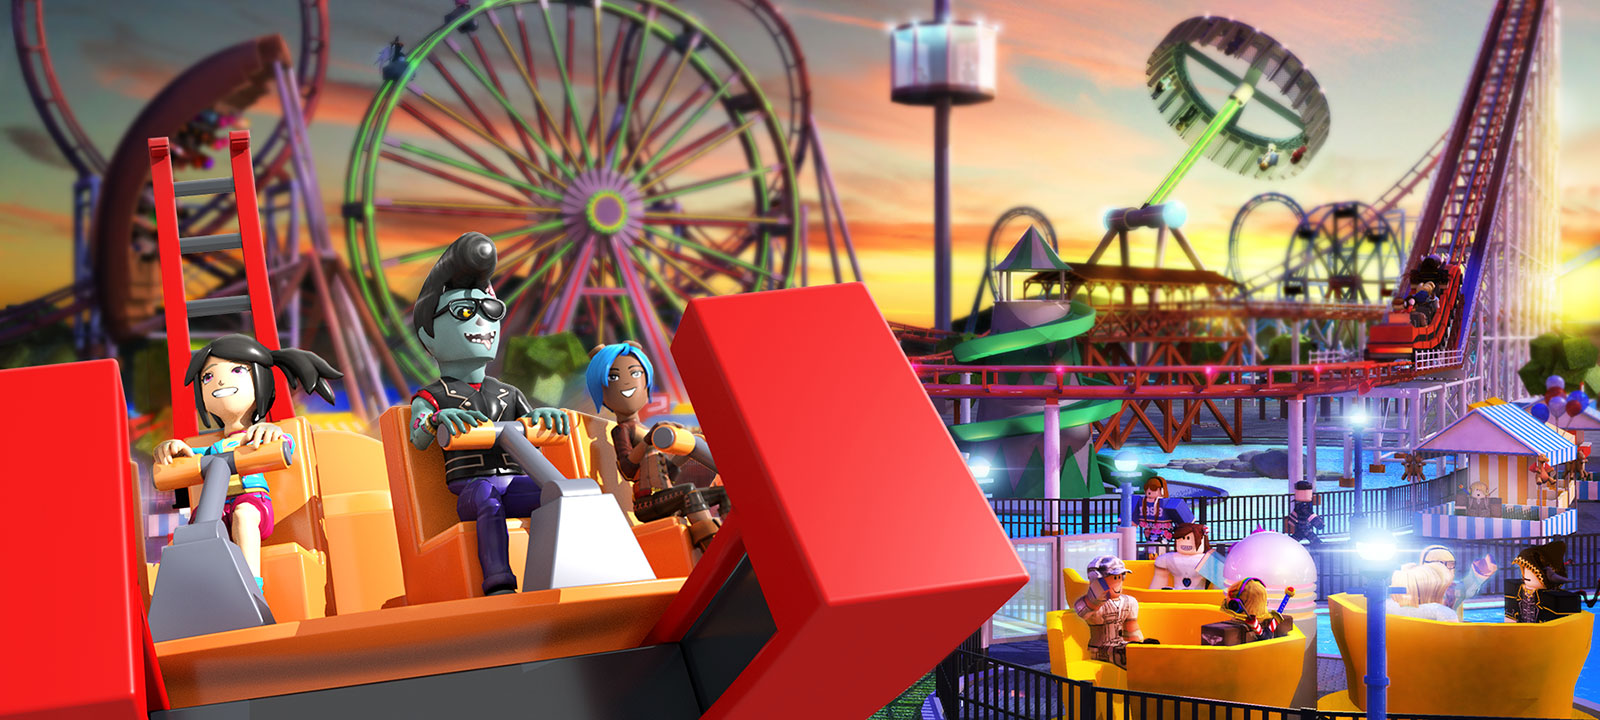 Robloxtoy Story 4 Rollercoasterfull Roblox For Xbox One Xbox